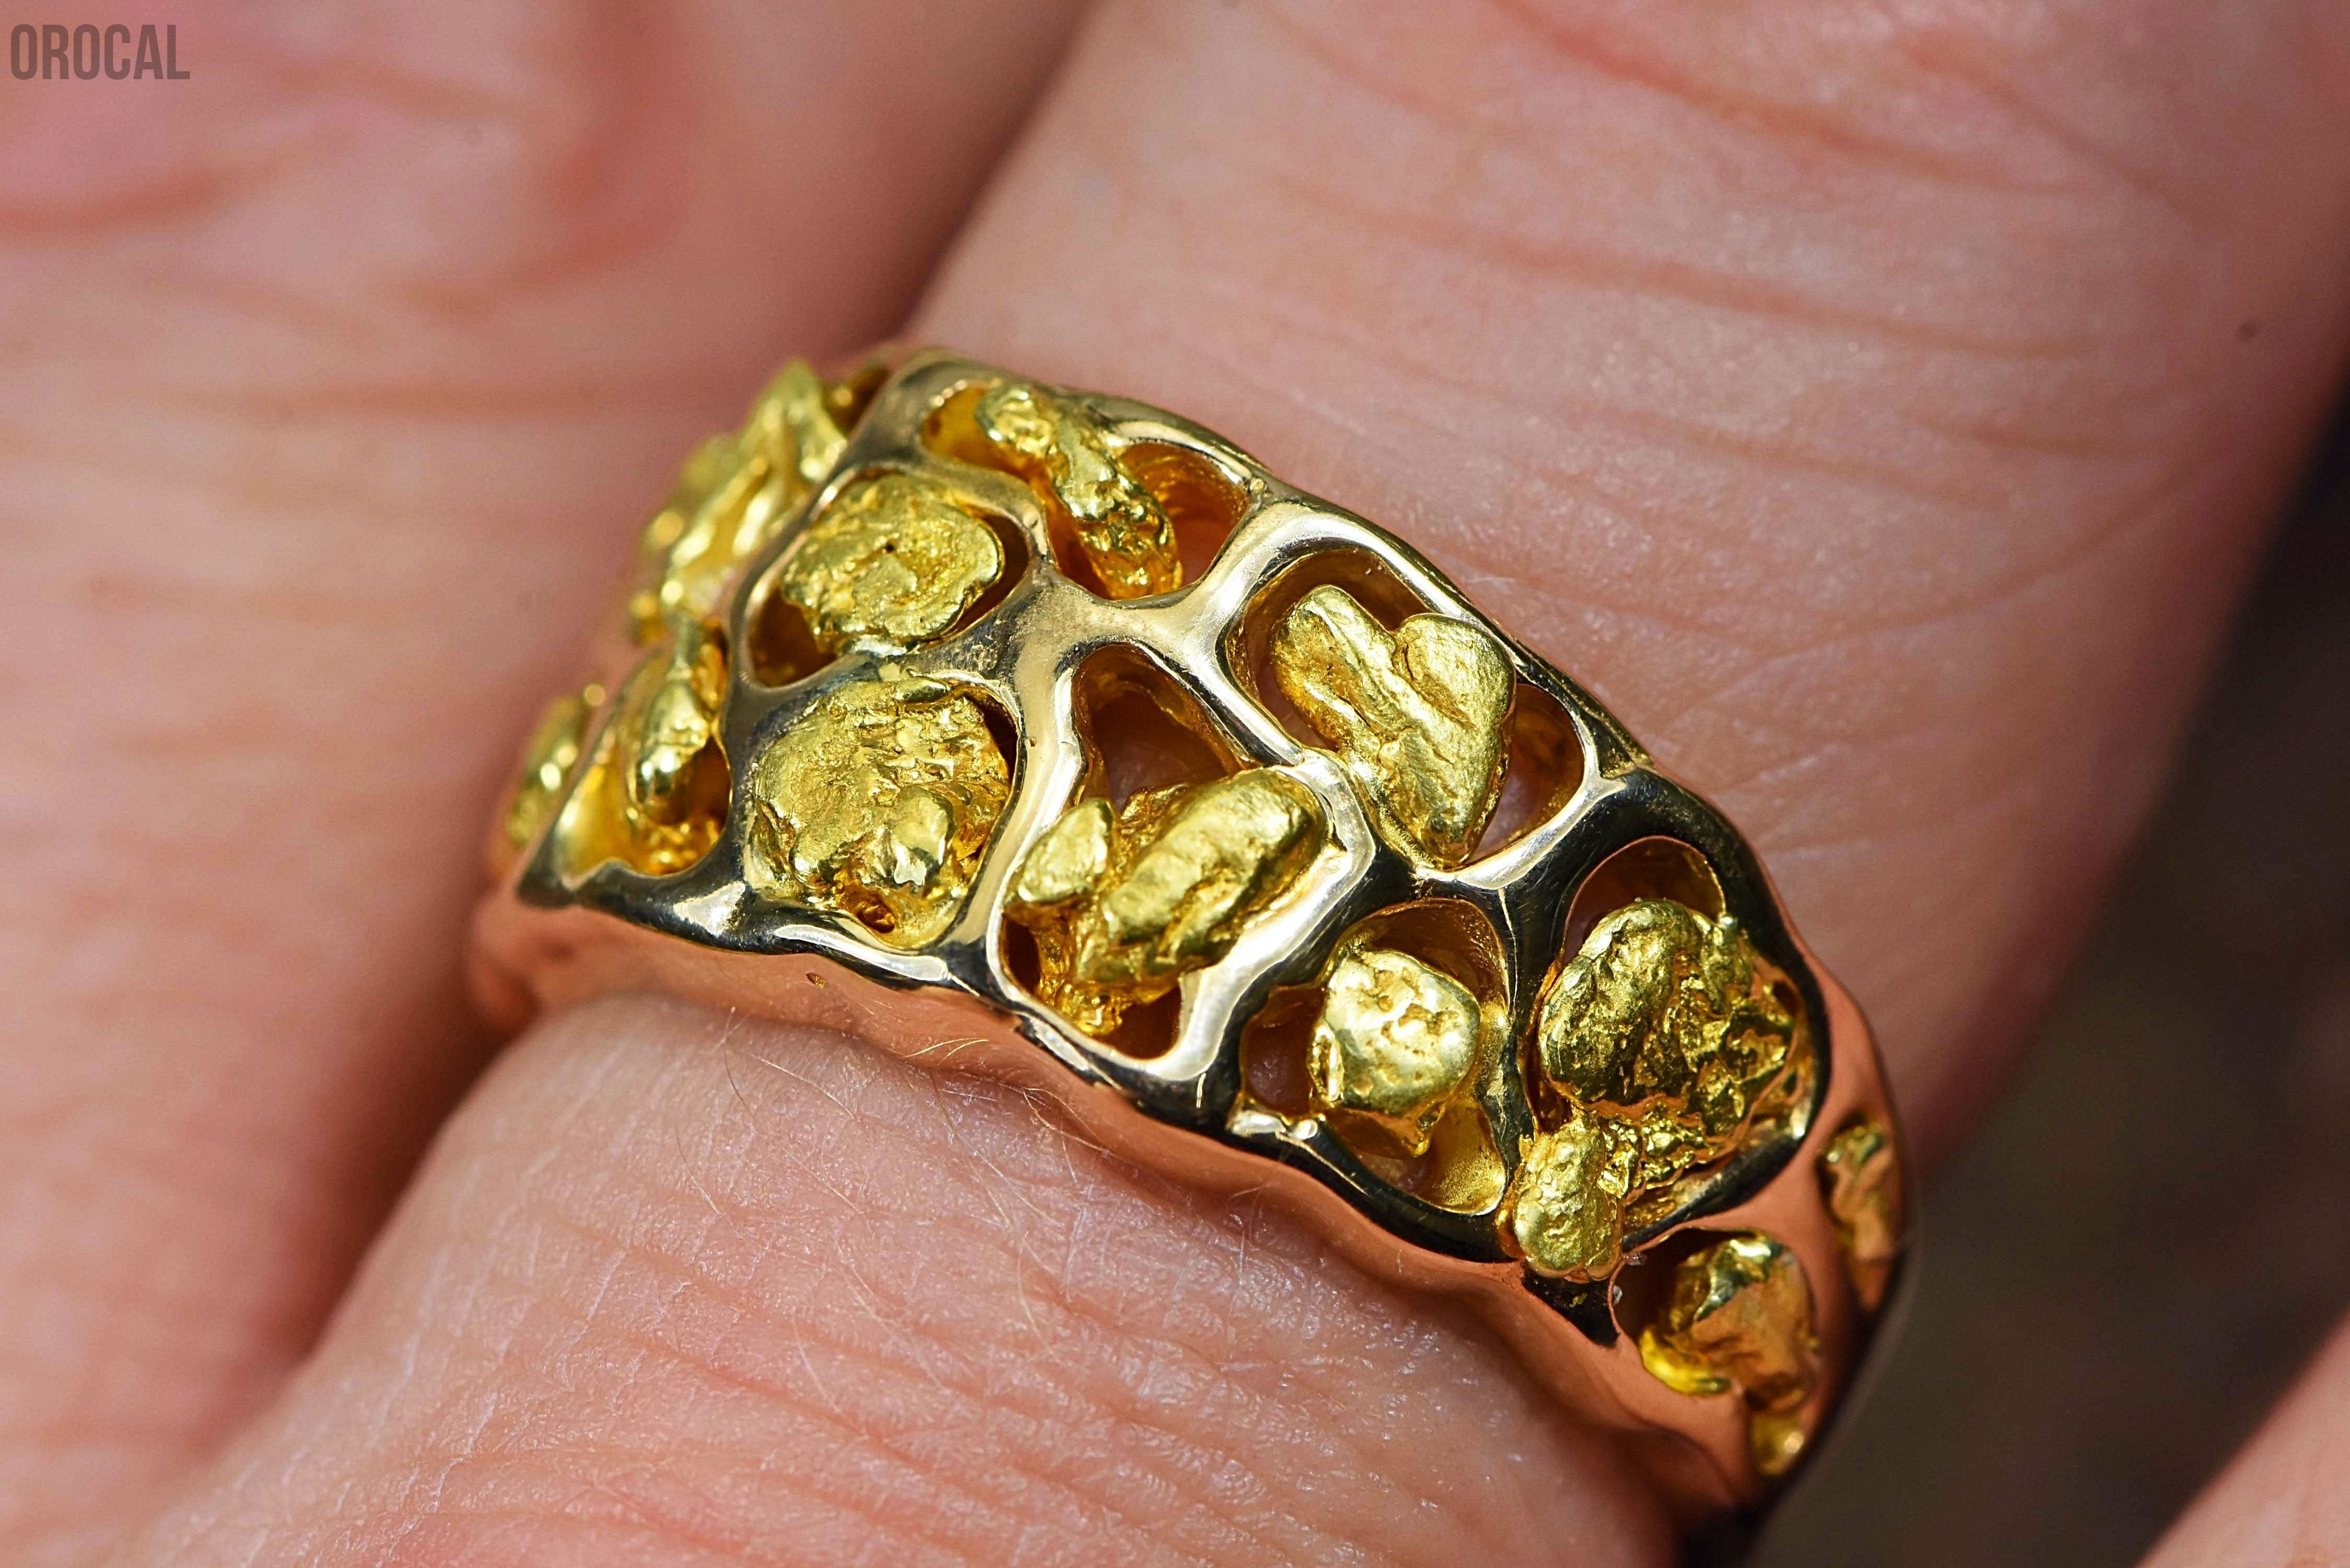 Gold Nugget Mens Ring Orocal Rm184 Genuine Hand Crafted Jewelry - 14K Casting